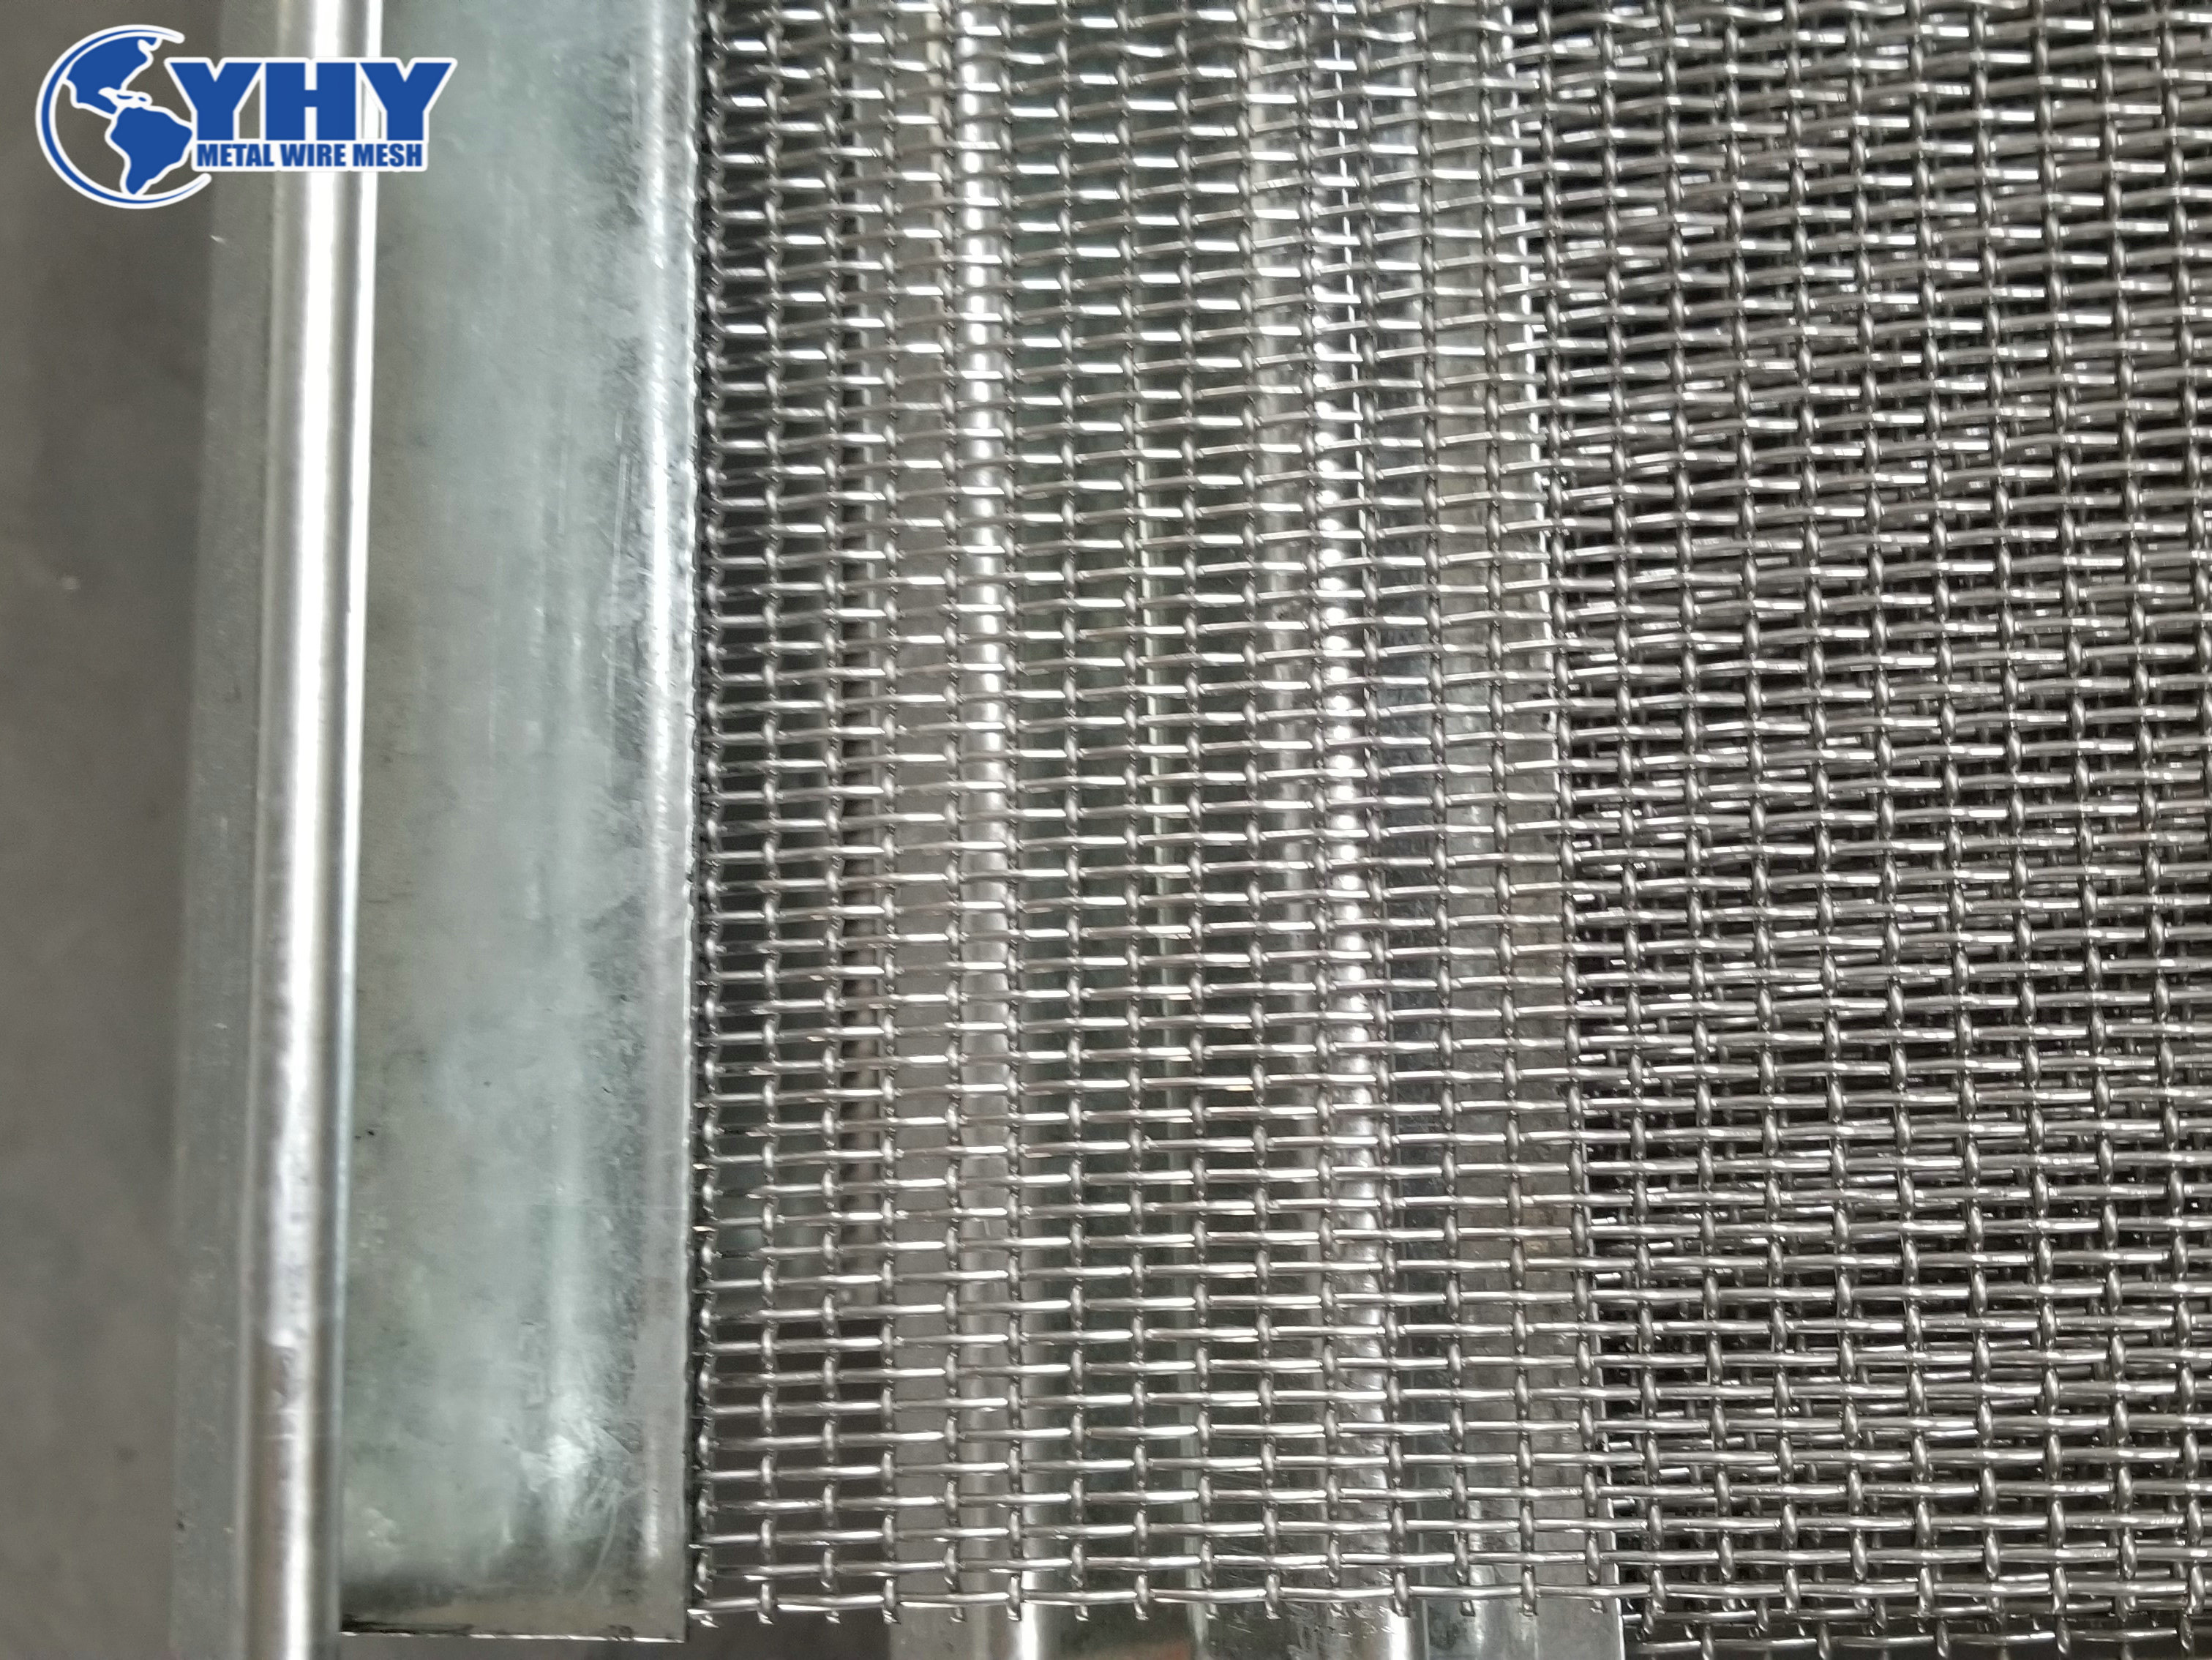 Crimped Mining Screen Mesh Sheet For Vibrating Machine With Hook / Reinforcing Edges